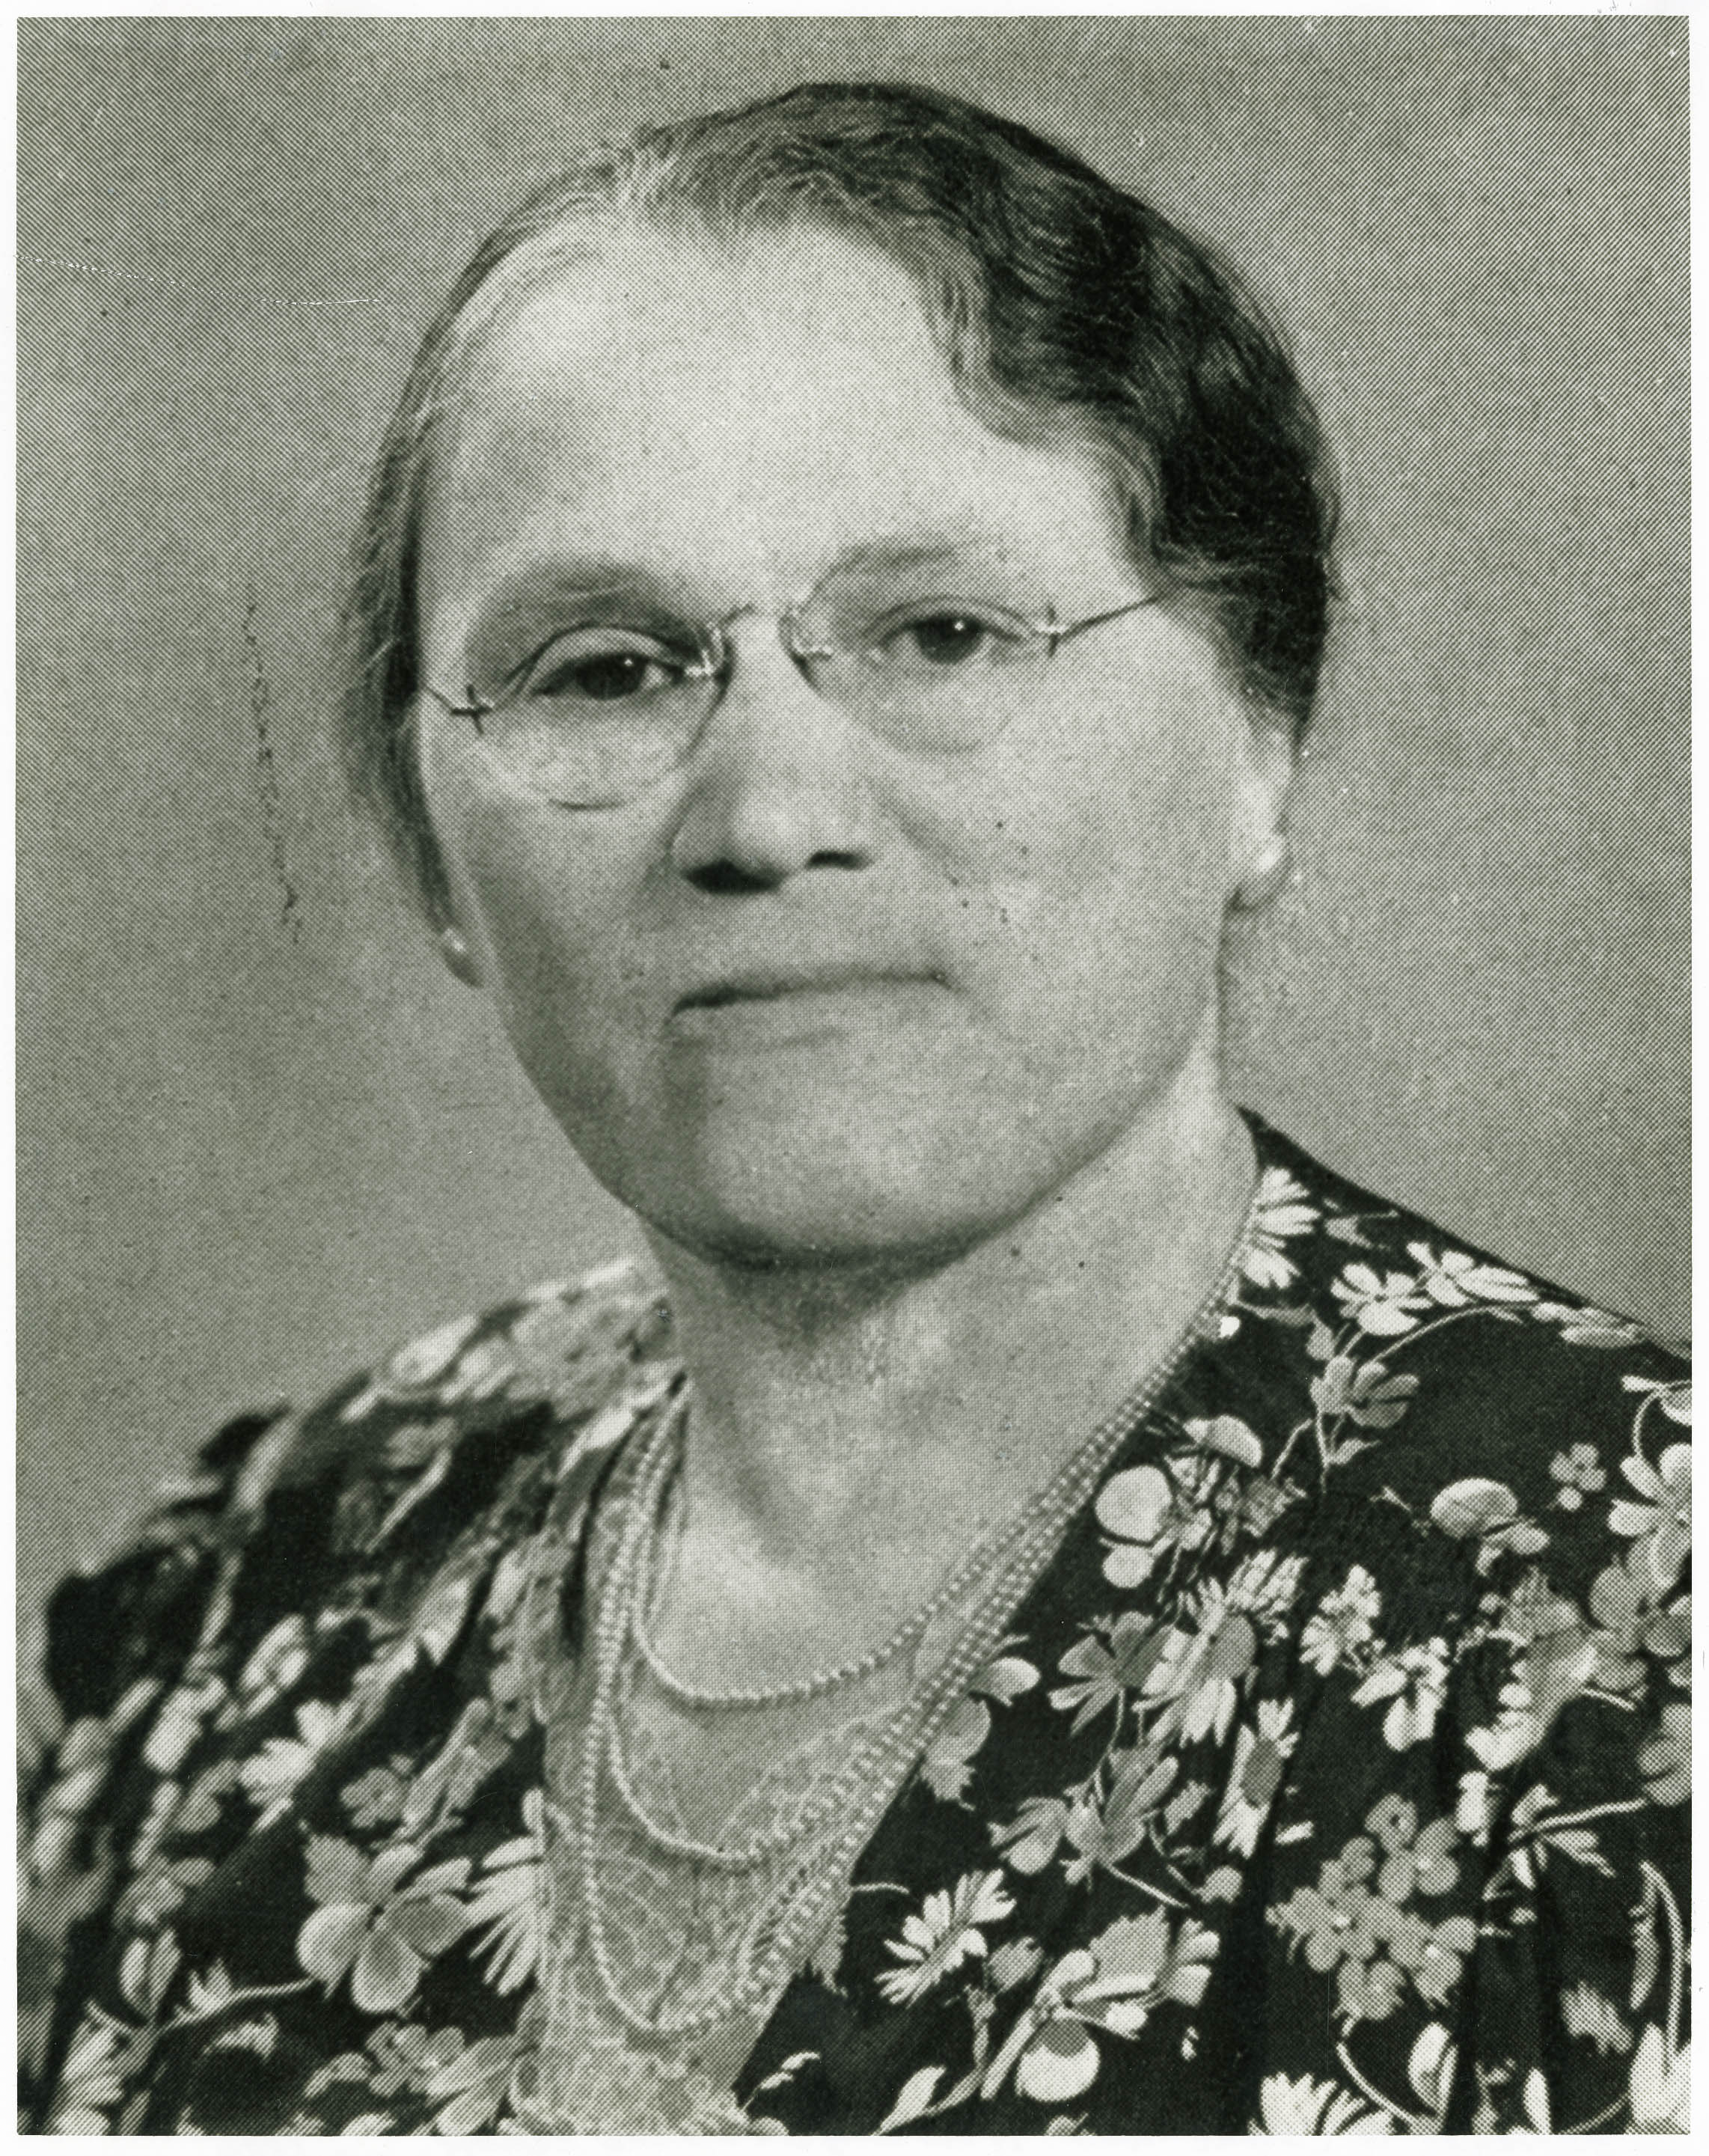 Portrait of Florence A. Clyde, Director of Avery Training School